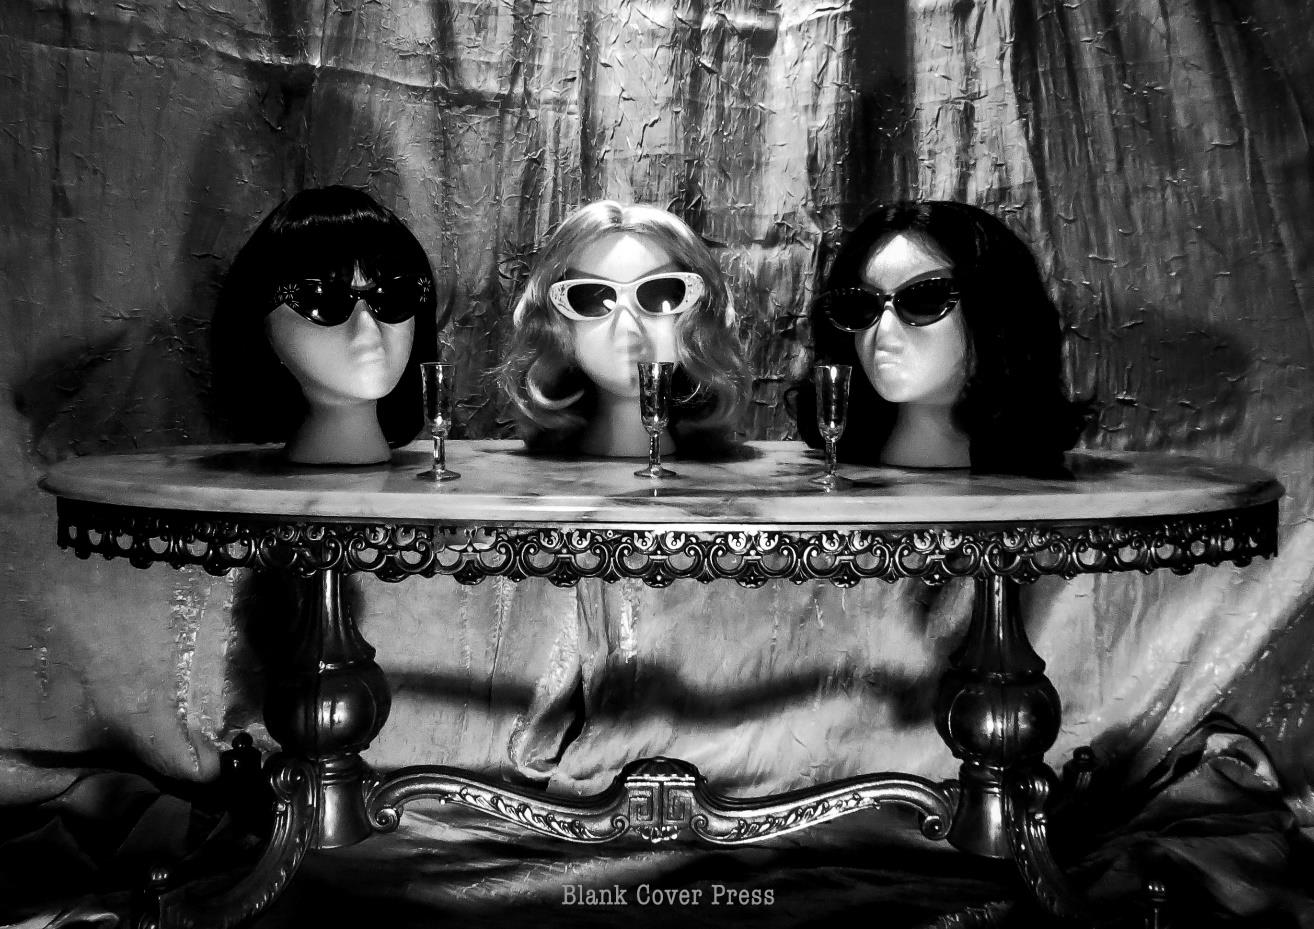 Three mannequin heads with wigs and sunglasses